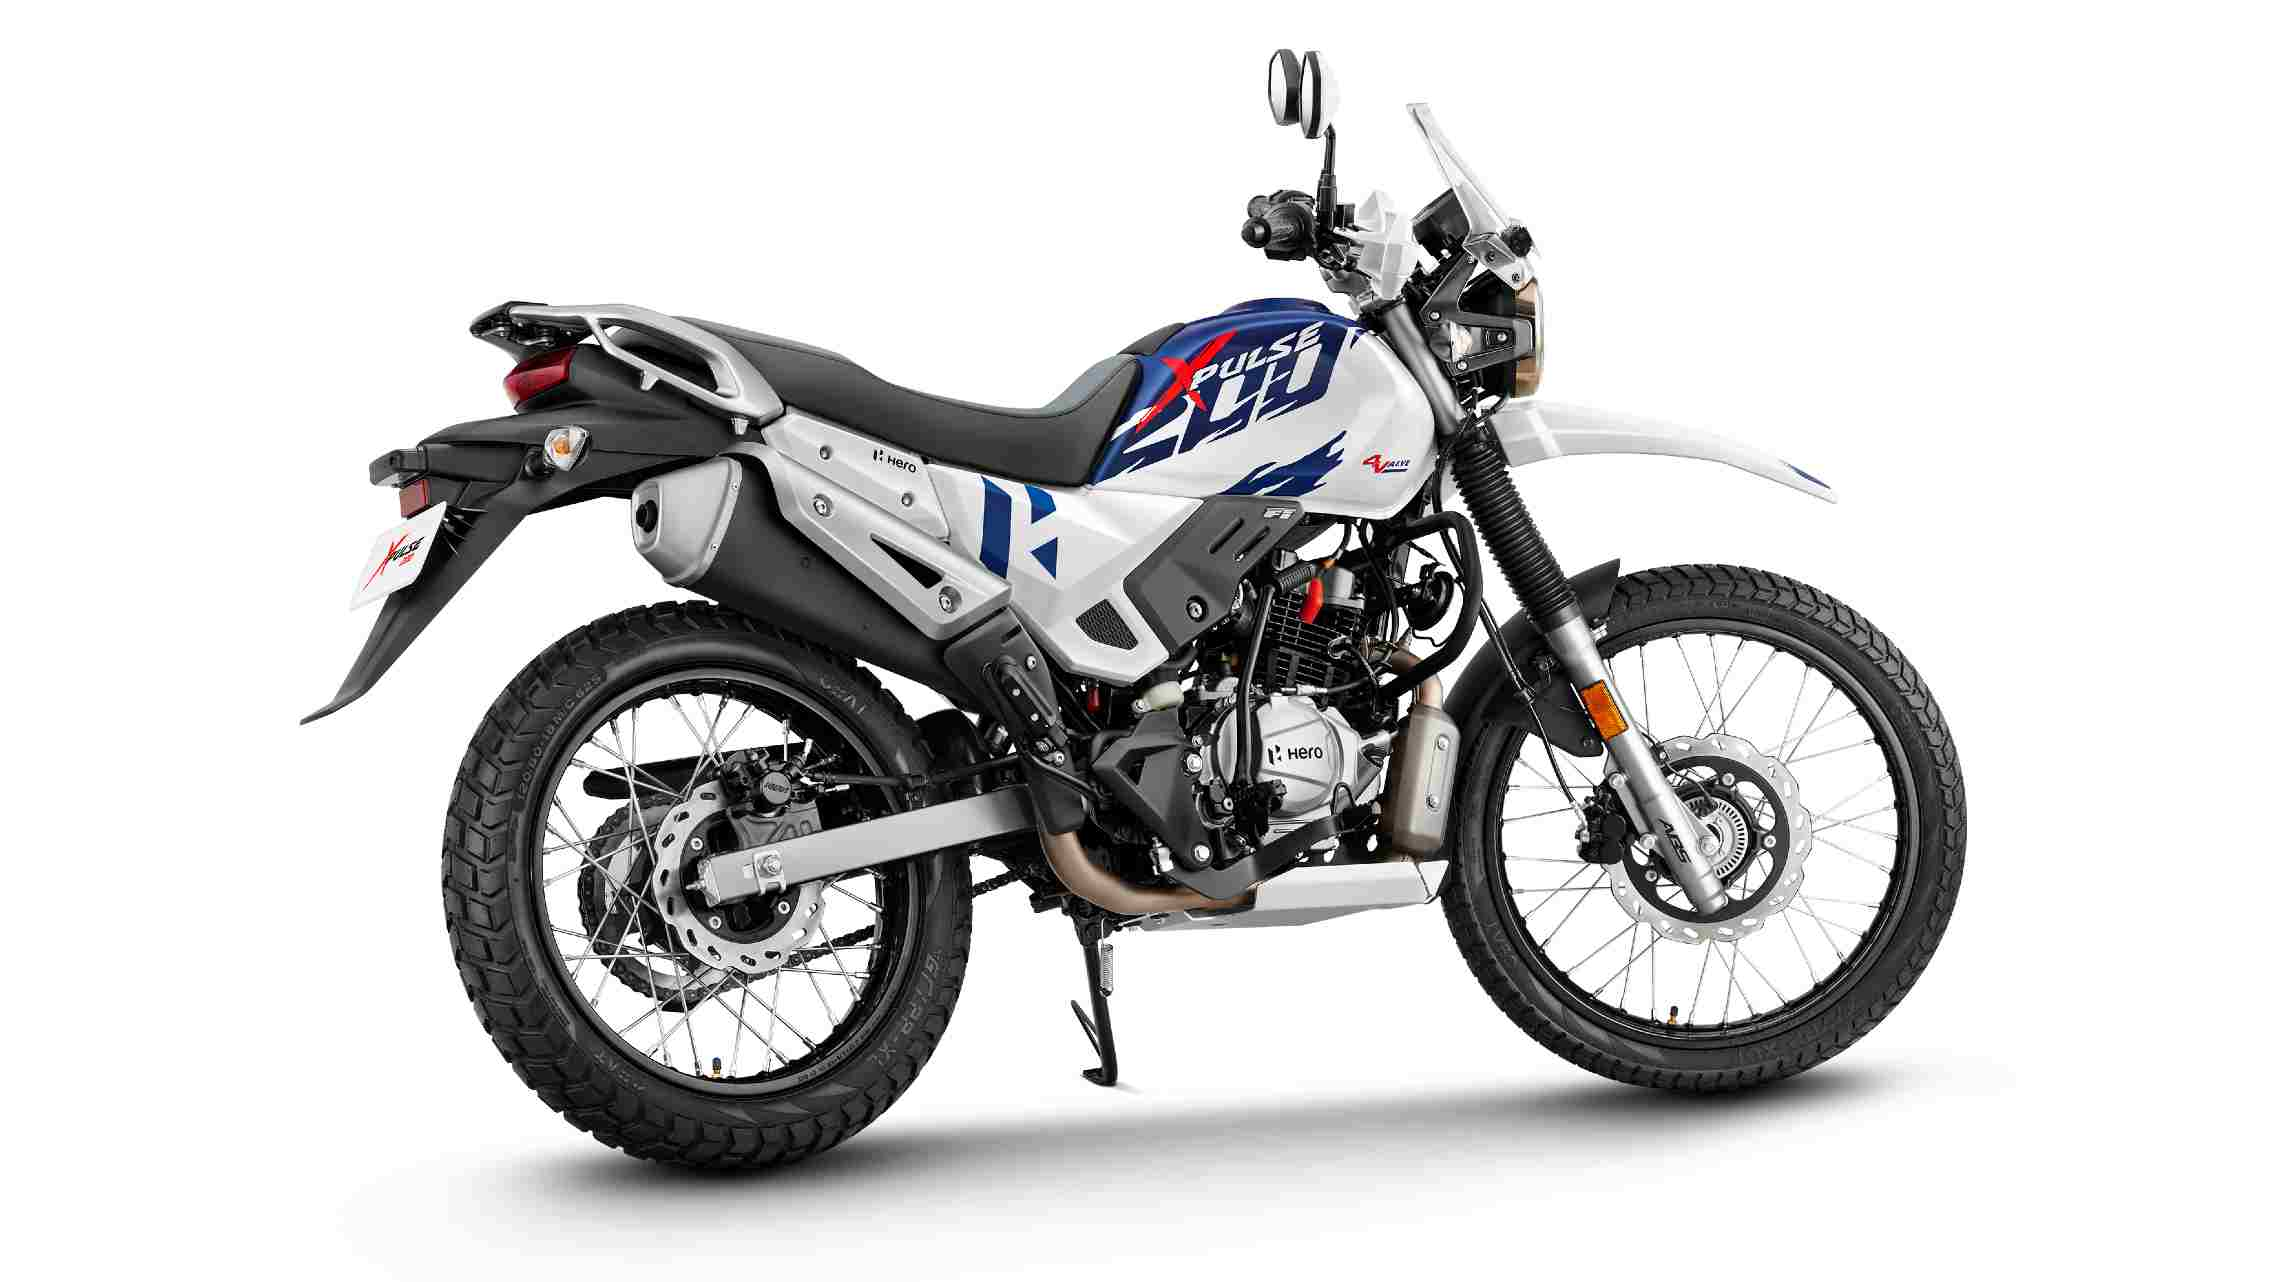 The XPulse 200 4V has one horsepower and one Nm more torque than the two-valve engine variant. Image: Hero MotoCorp